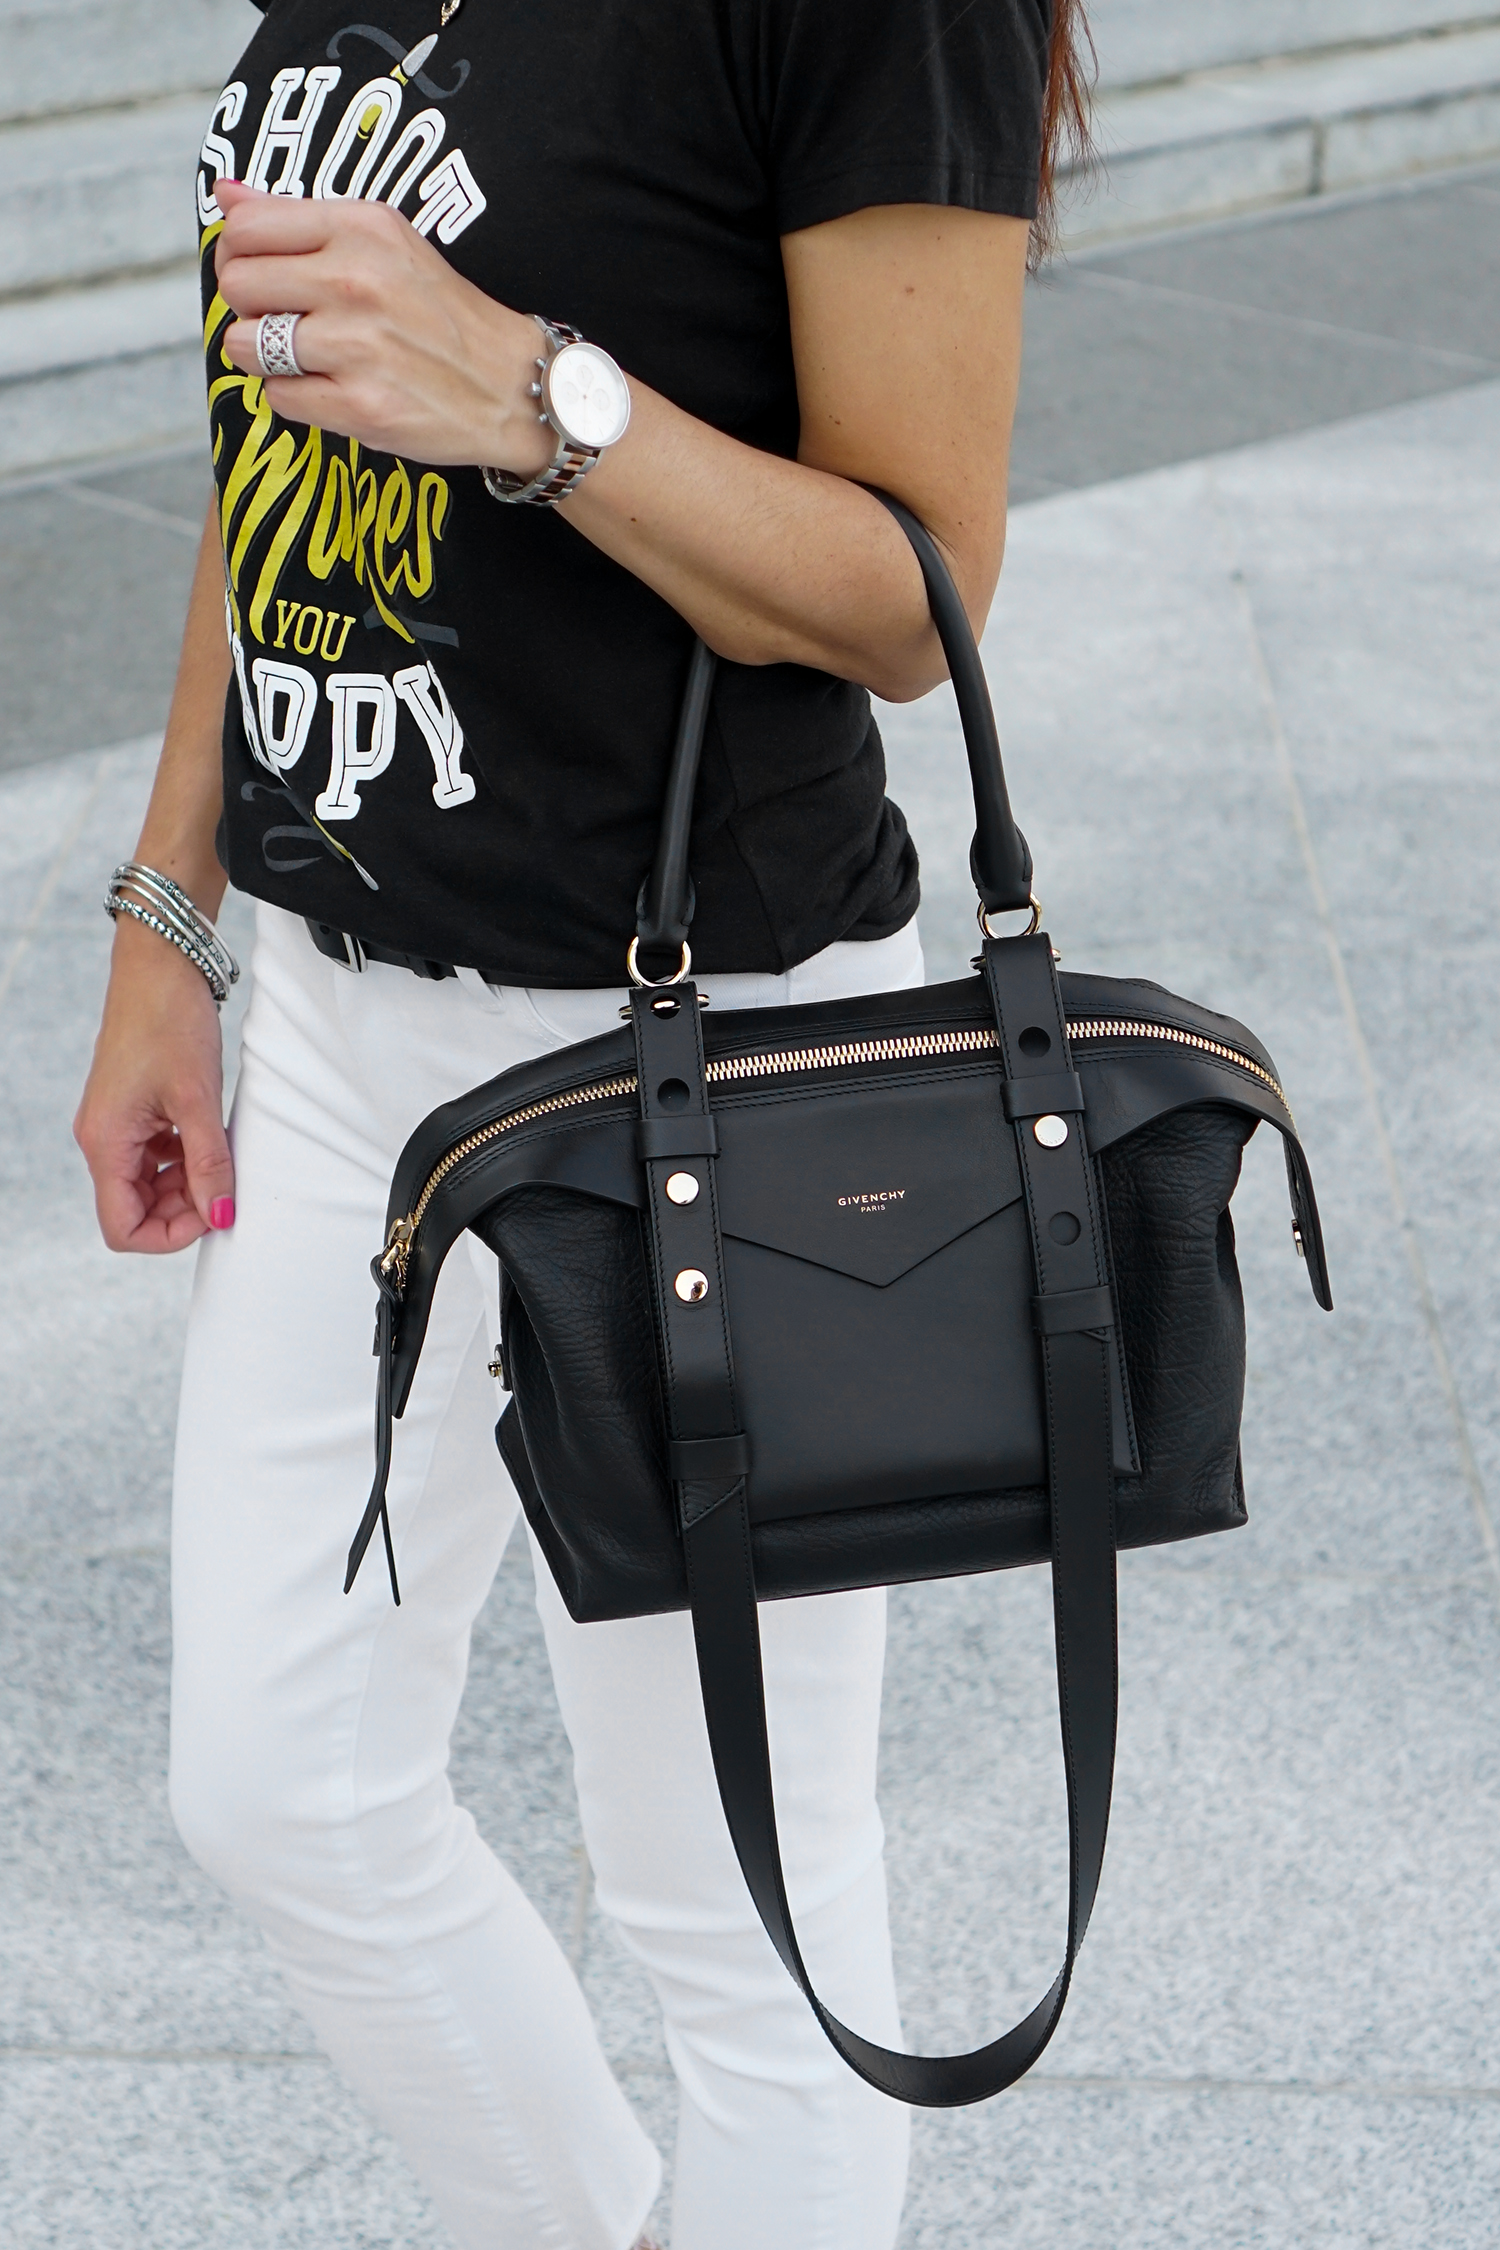 Givenchy Sway Bag, White Jeans for Summer